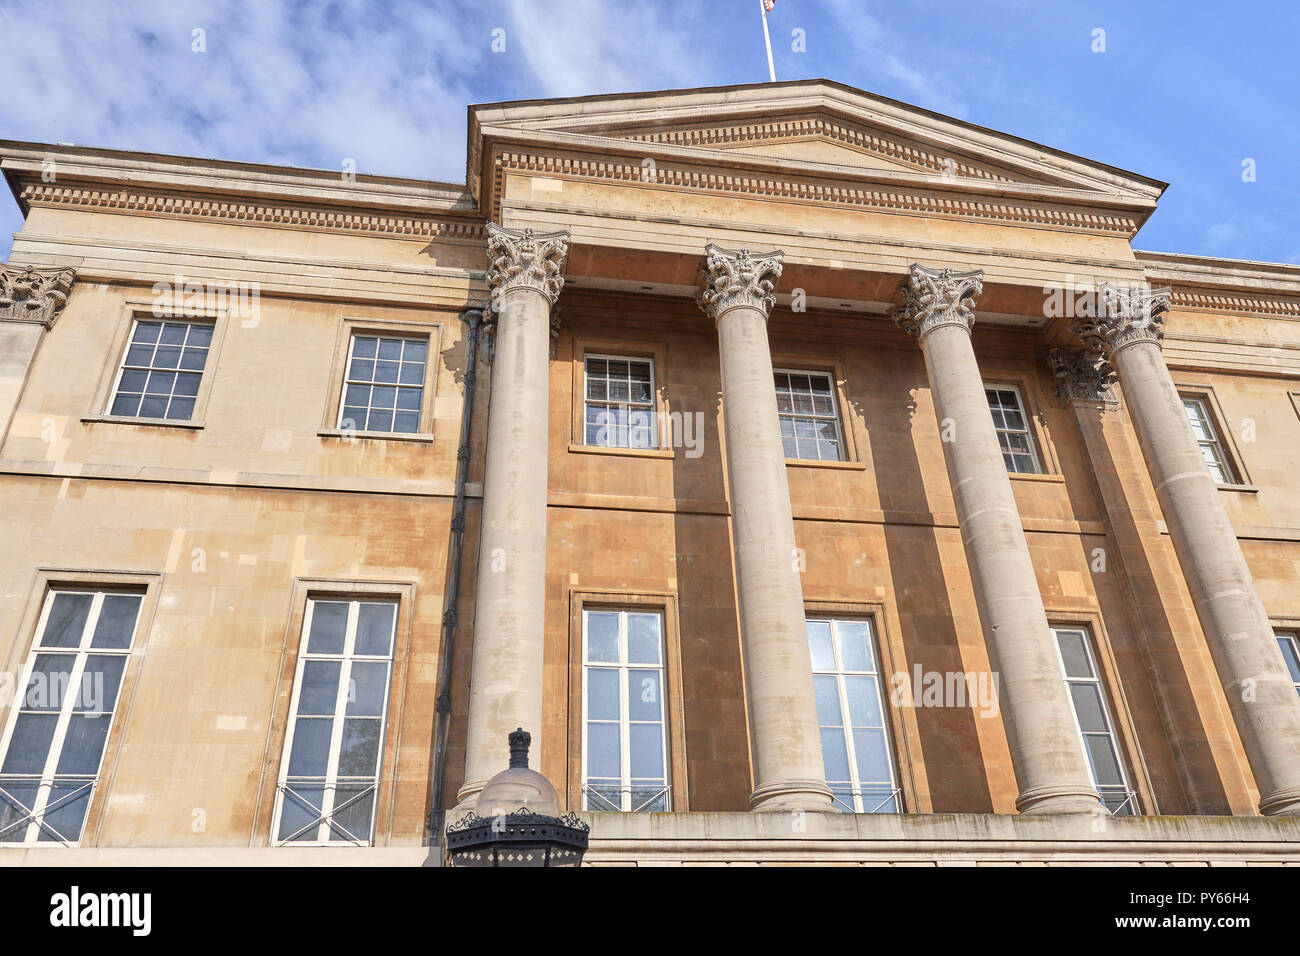 Apsley House, home of the Wellington family, Hyde Park corner, London, England. - Stock Image